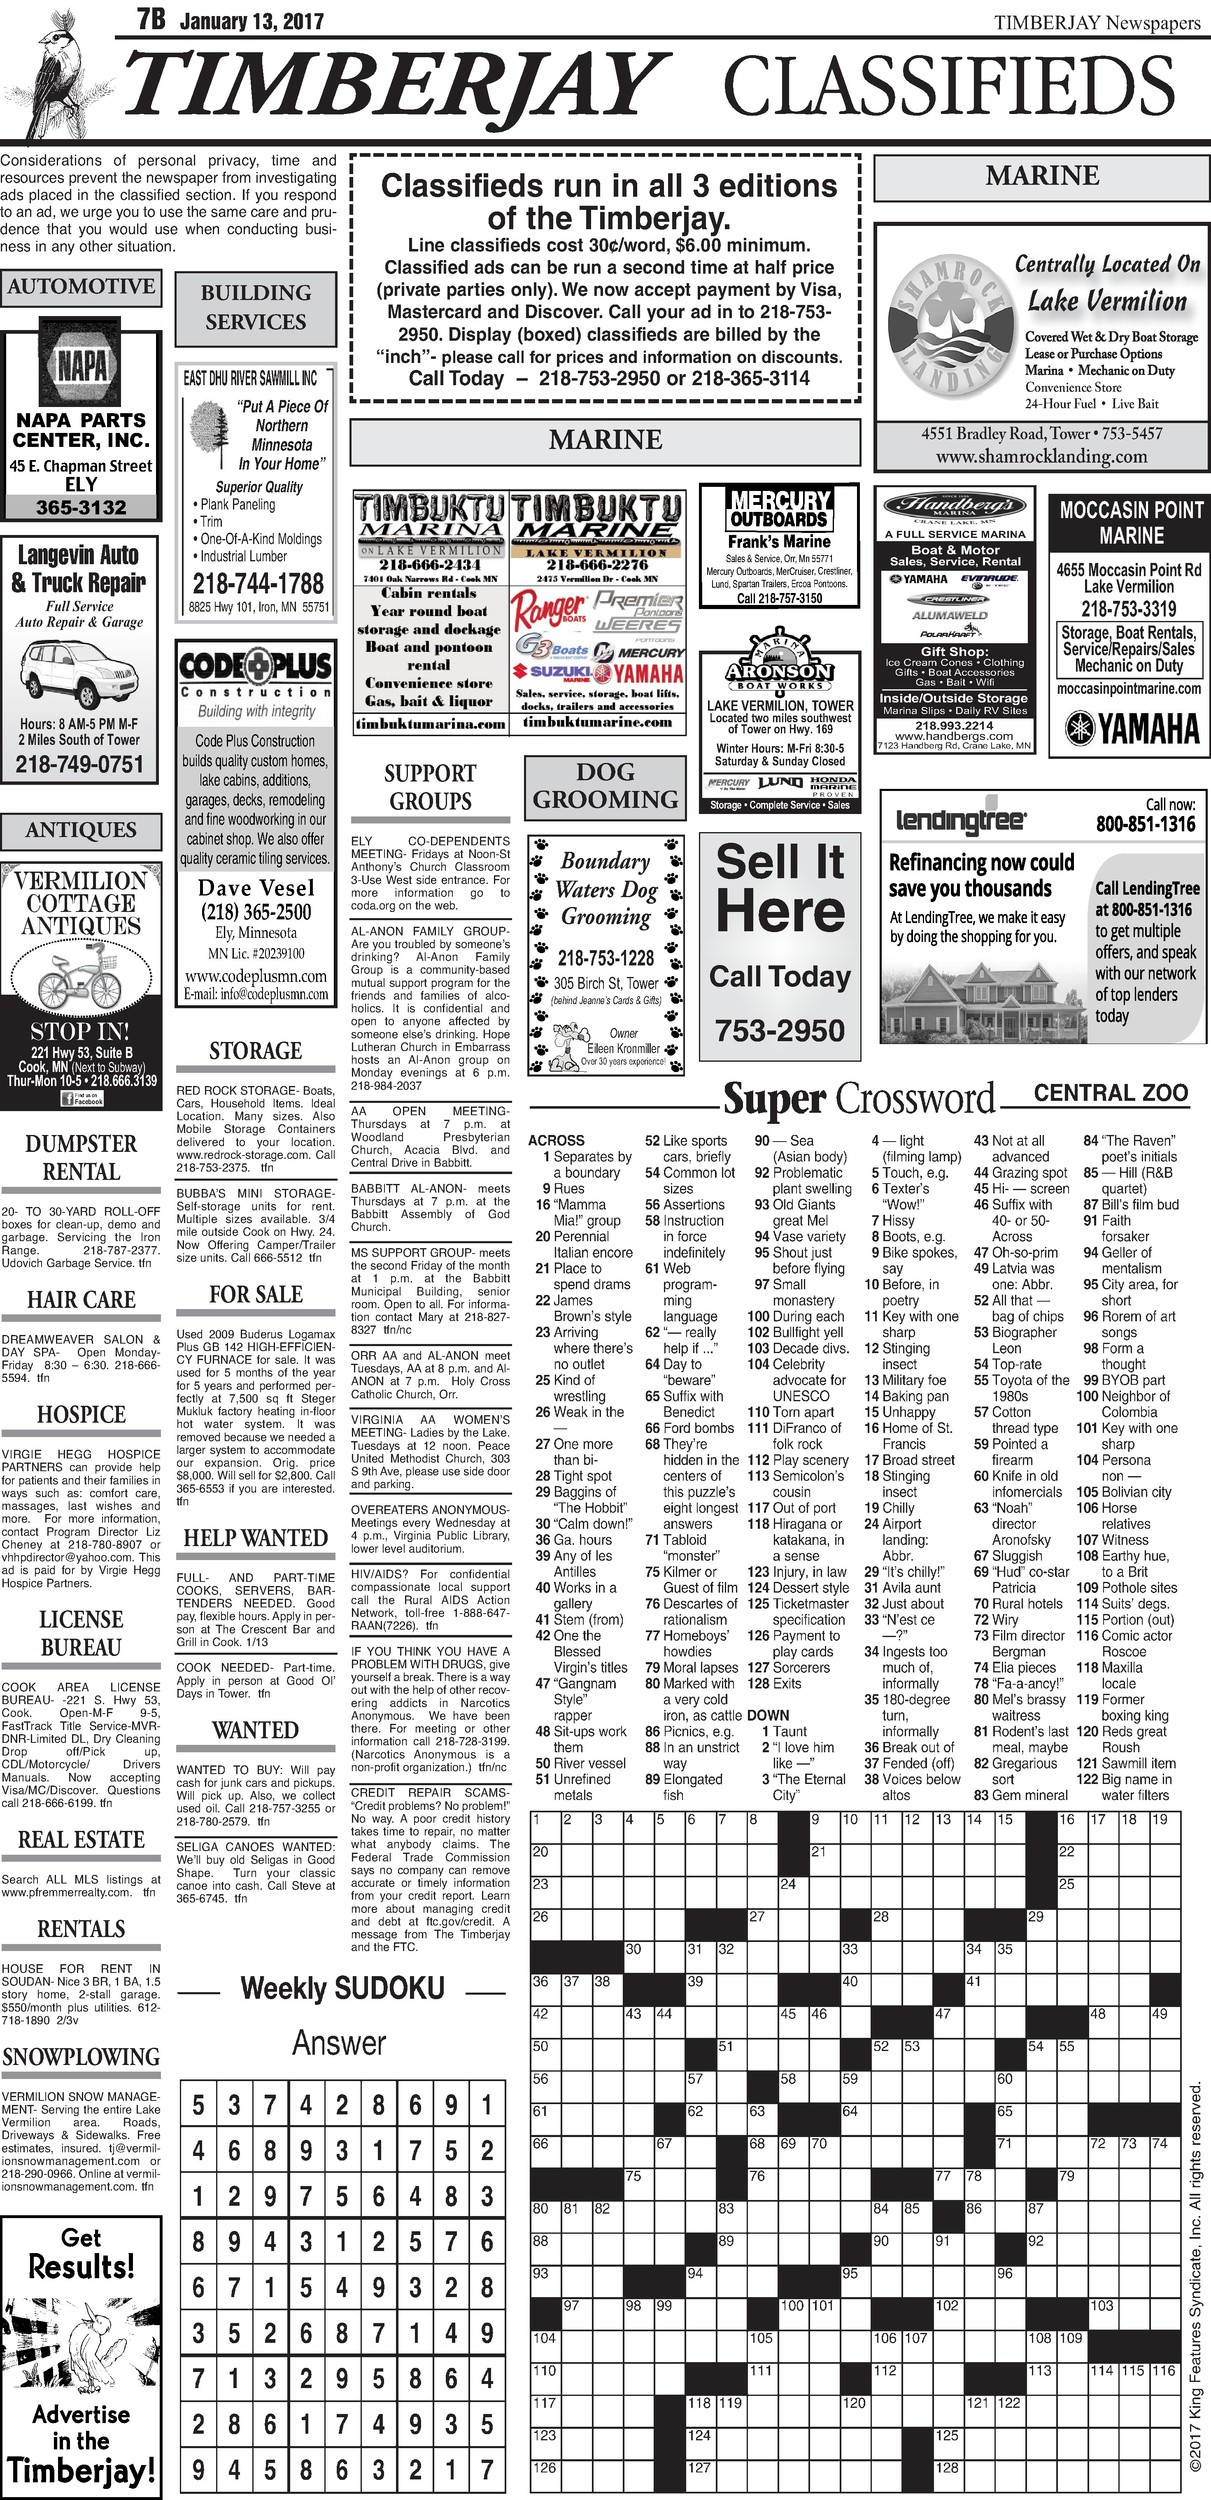 Click here to view the legal notices and classifieds on page 7B